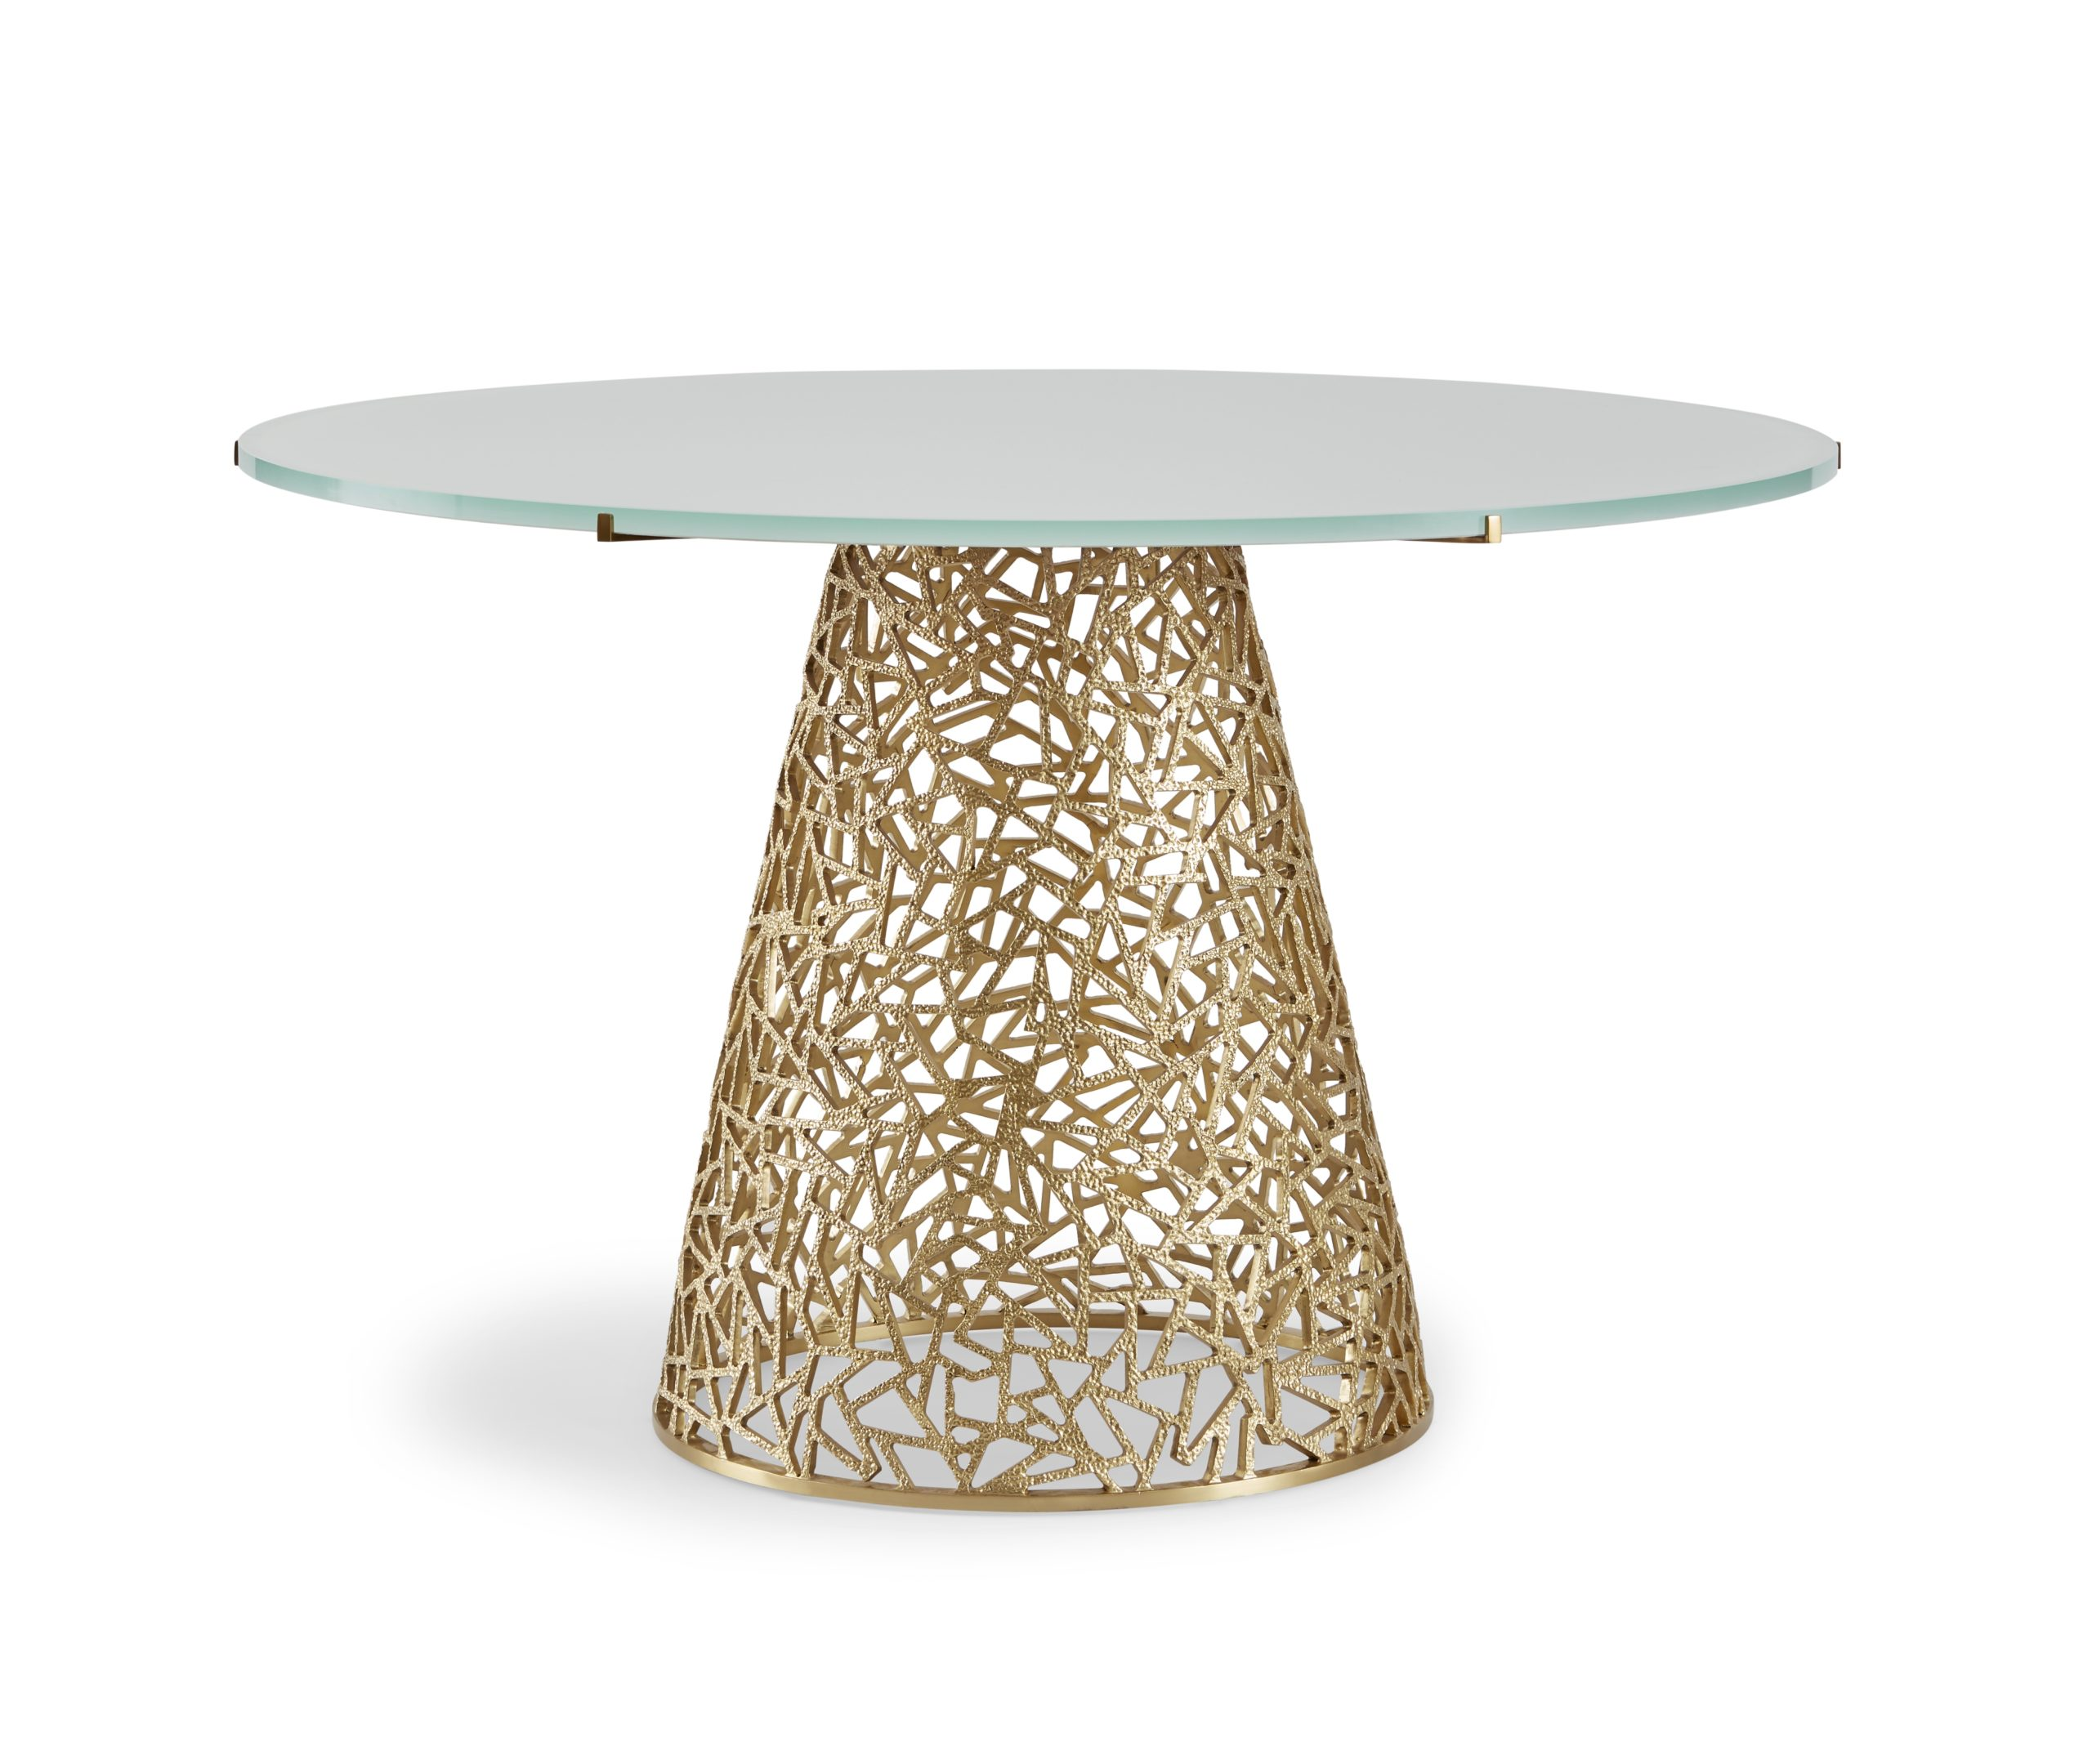 Baker_products_WNWN_filigree_table_BAA3236_FRONT-scaled-6